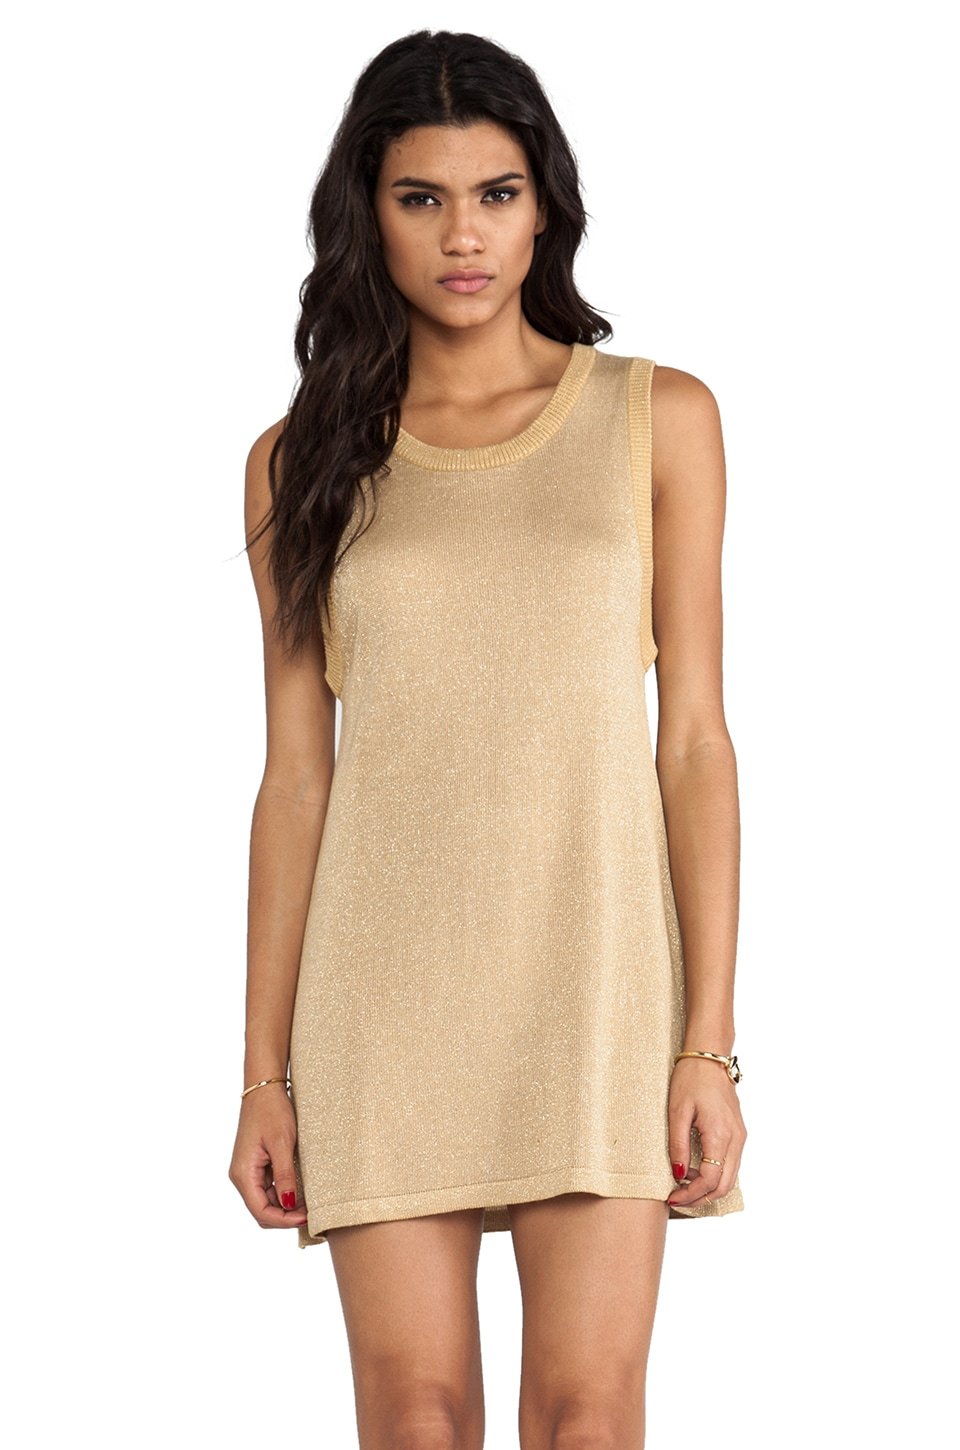 L'AMERICA Gold Rush Lures Knit Dress in Gold